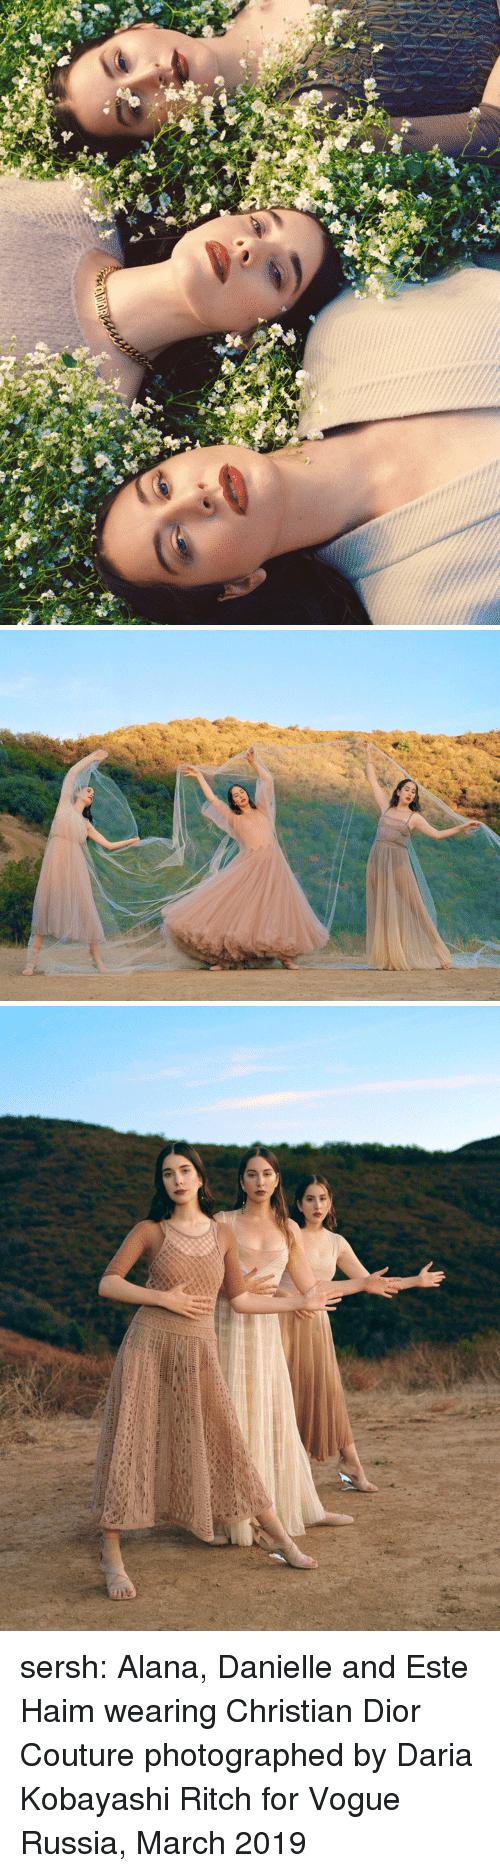 Tumblr, Blog, and Russia: sersh: Alana, Danielle and Este Haim wearing Christian Dior Couture photographed by Daria Kobayashi Ritch for Vogue Russia, March 2019